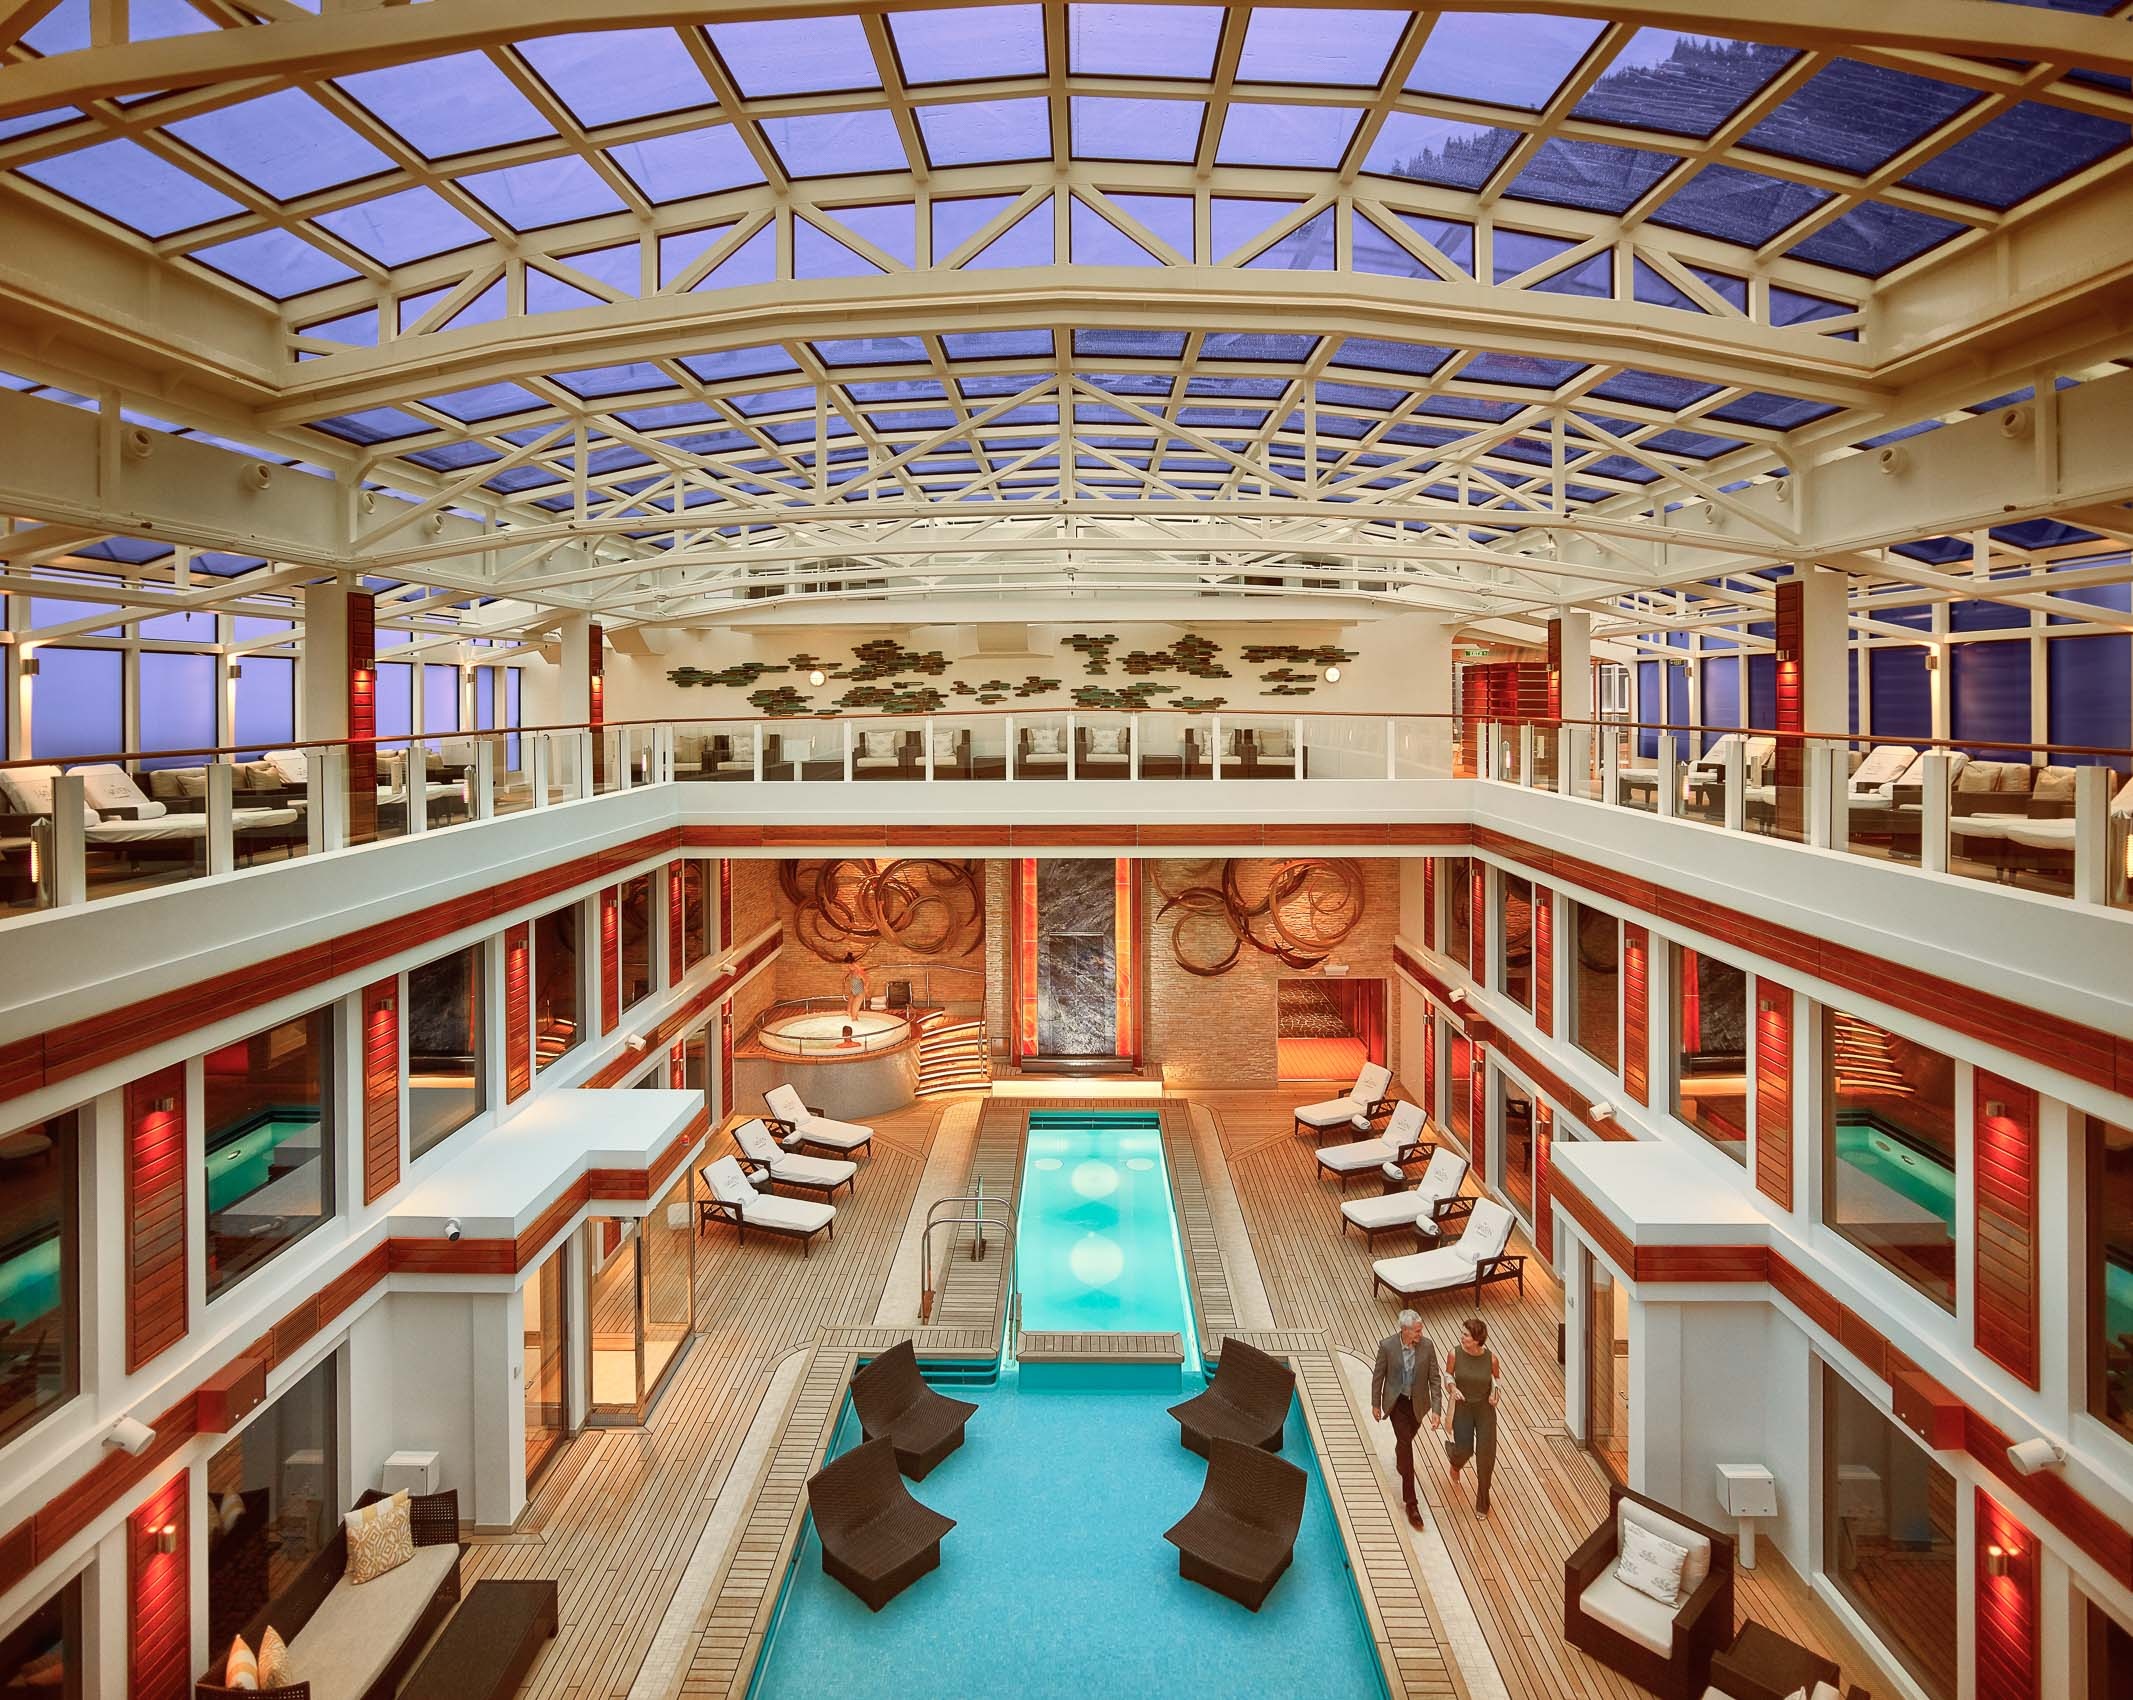 Kevin Steele - the expansive interior atrium spa in a cruise ship